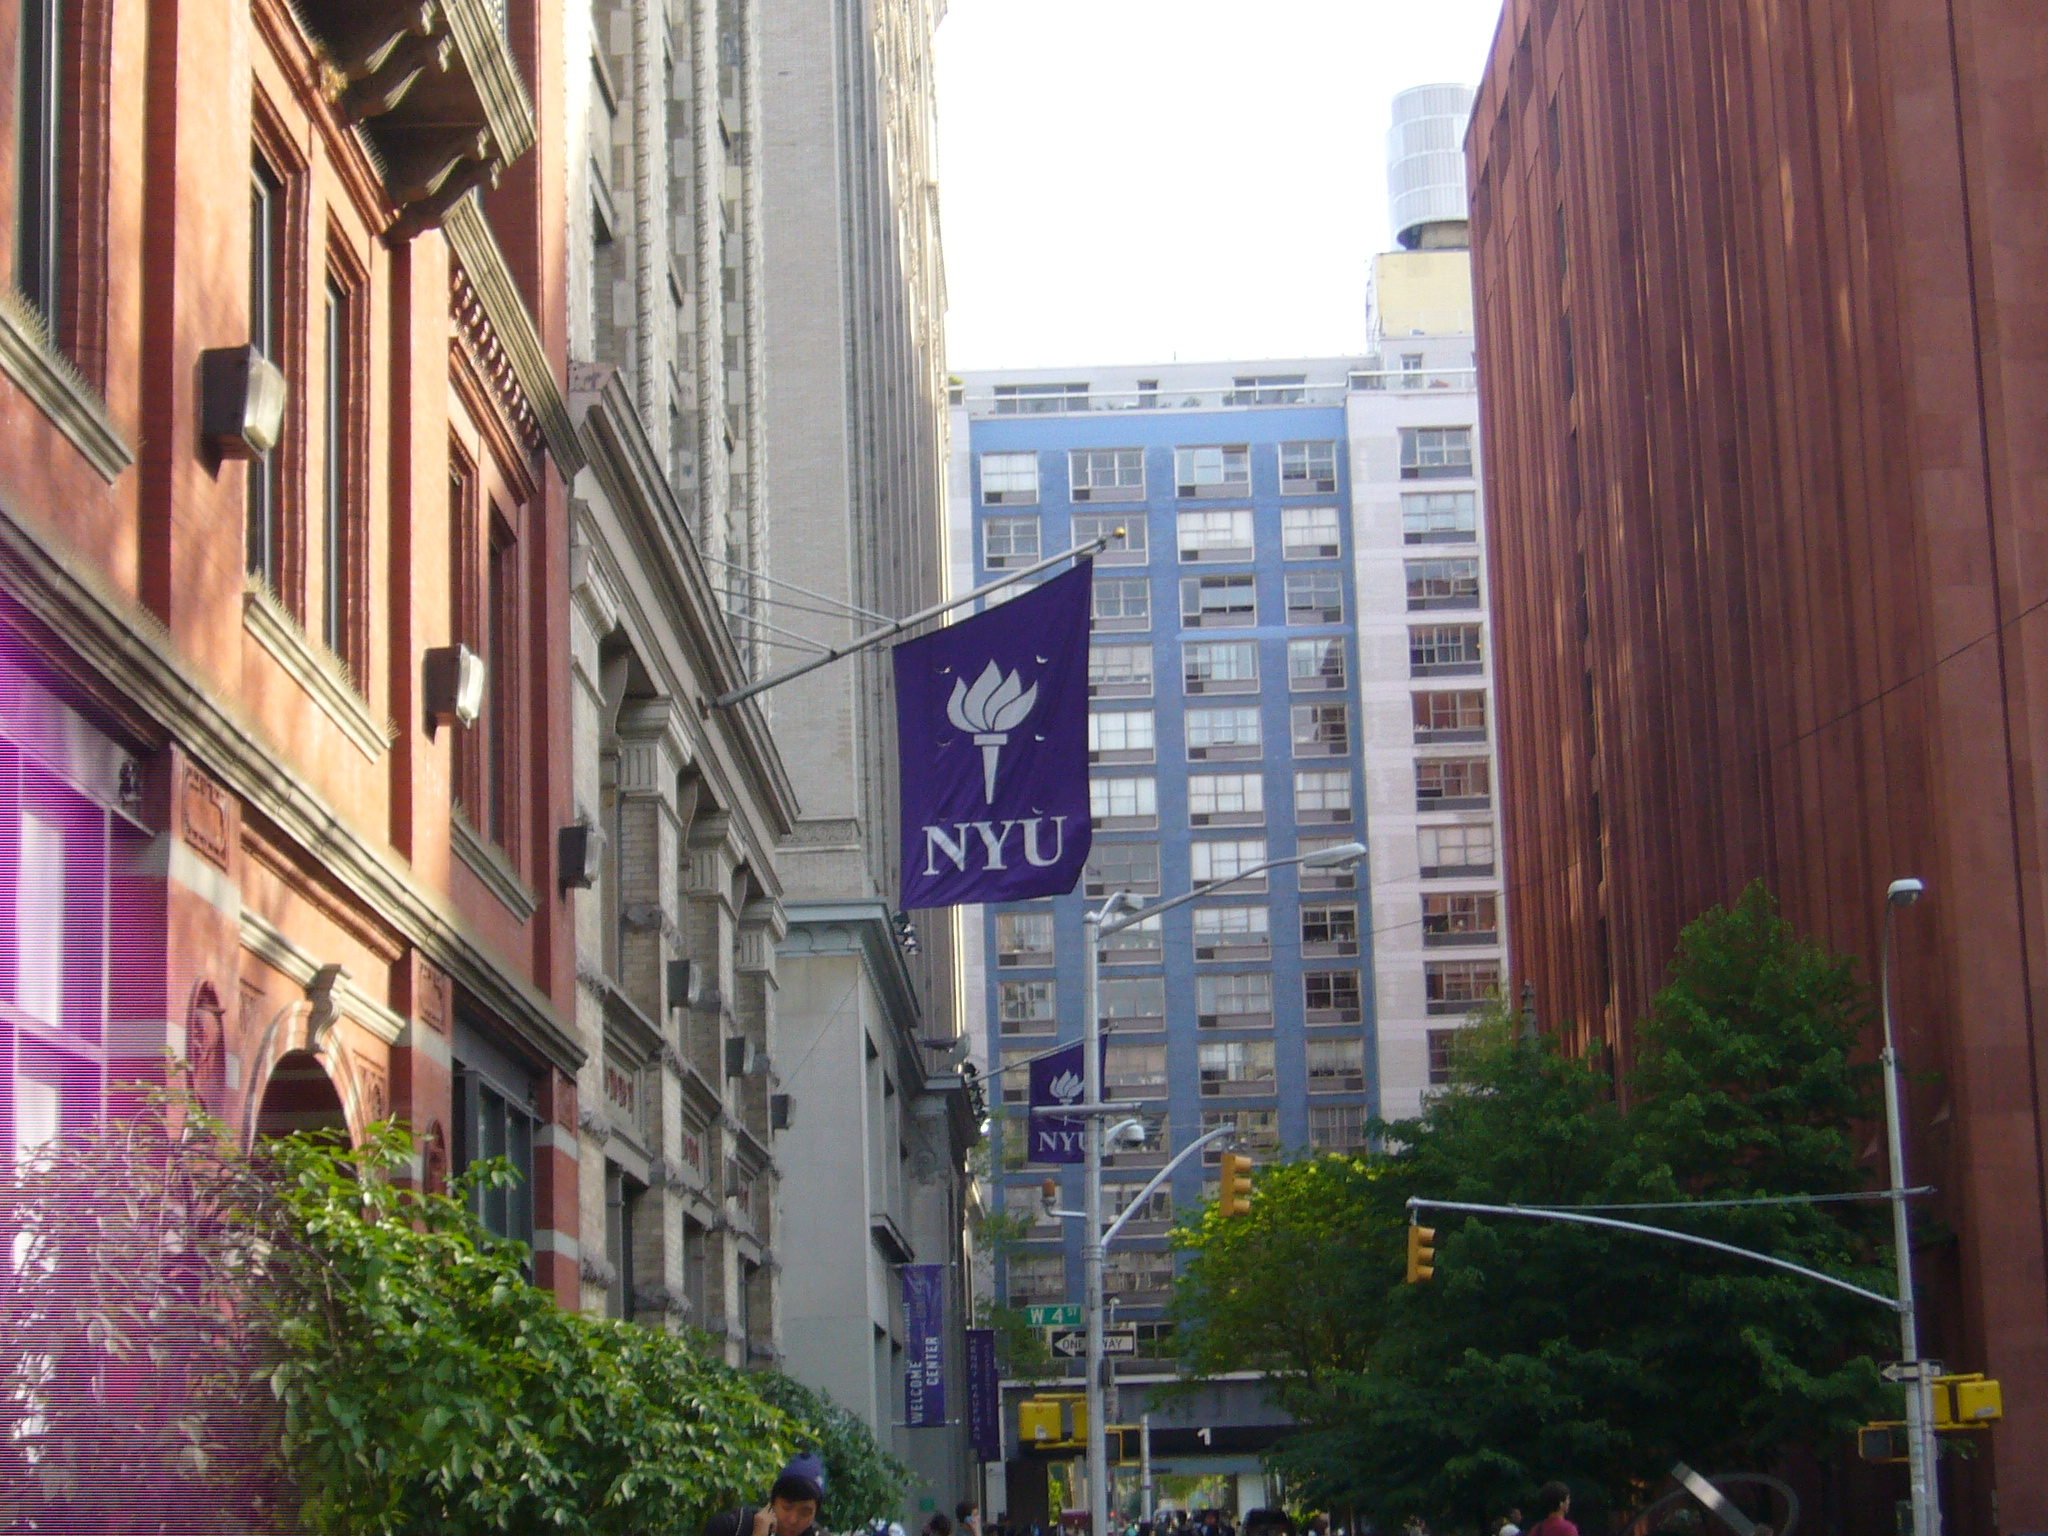 New York University Wallpaper